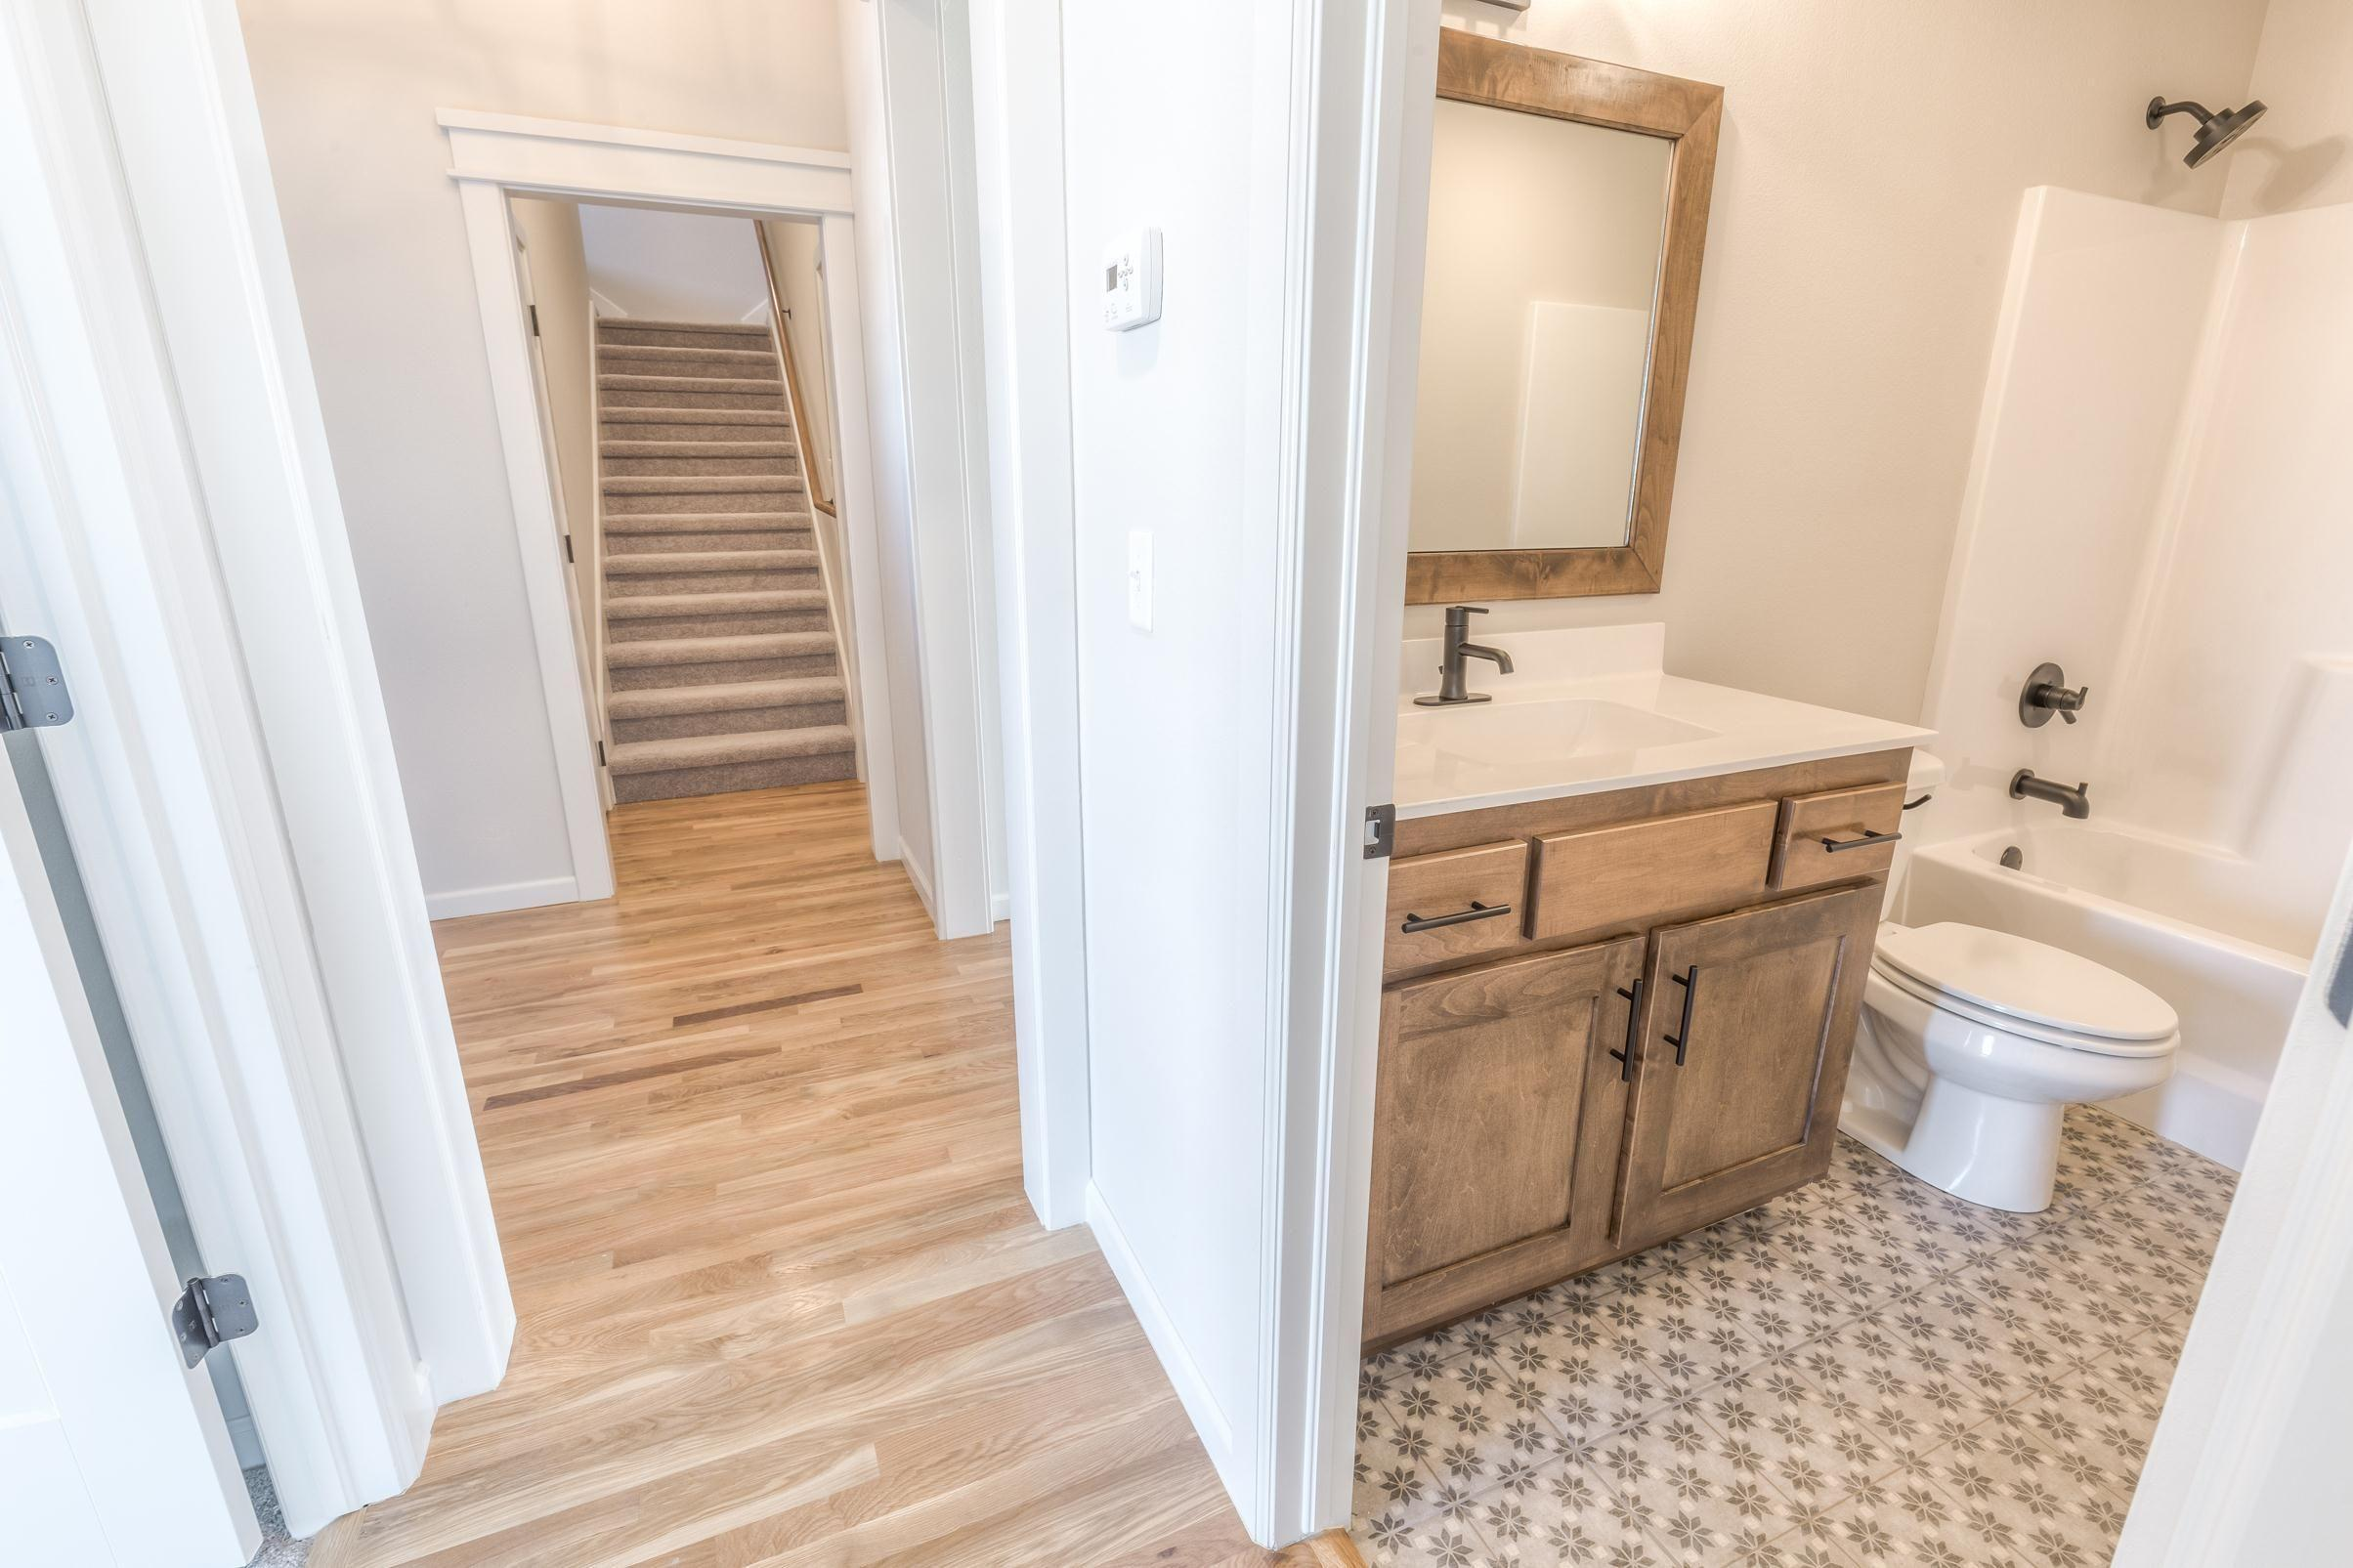 Bathroom featured in the Walker FH By Concept Builders, Inc in Tulsa, OK